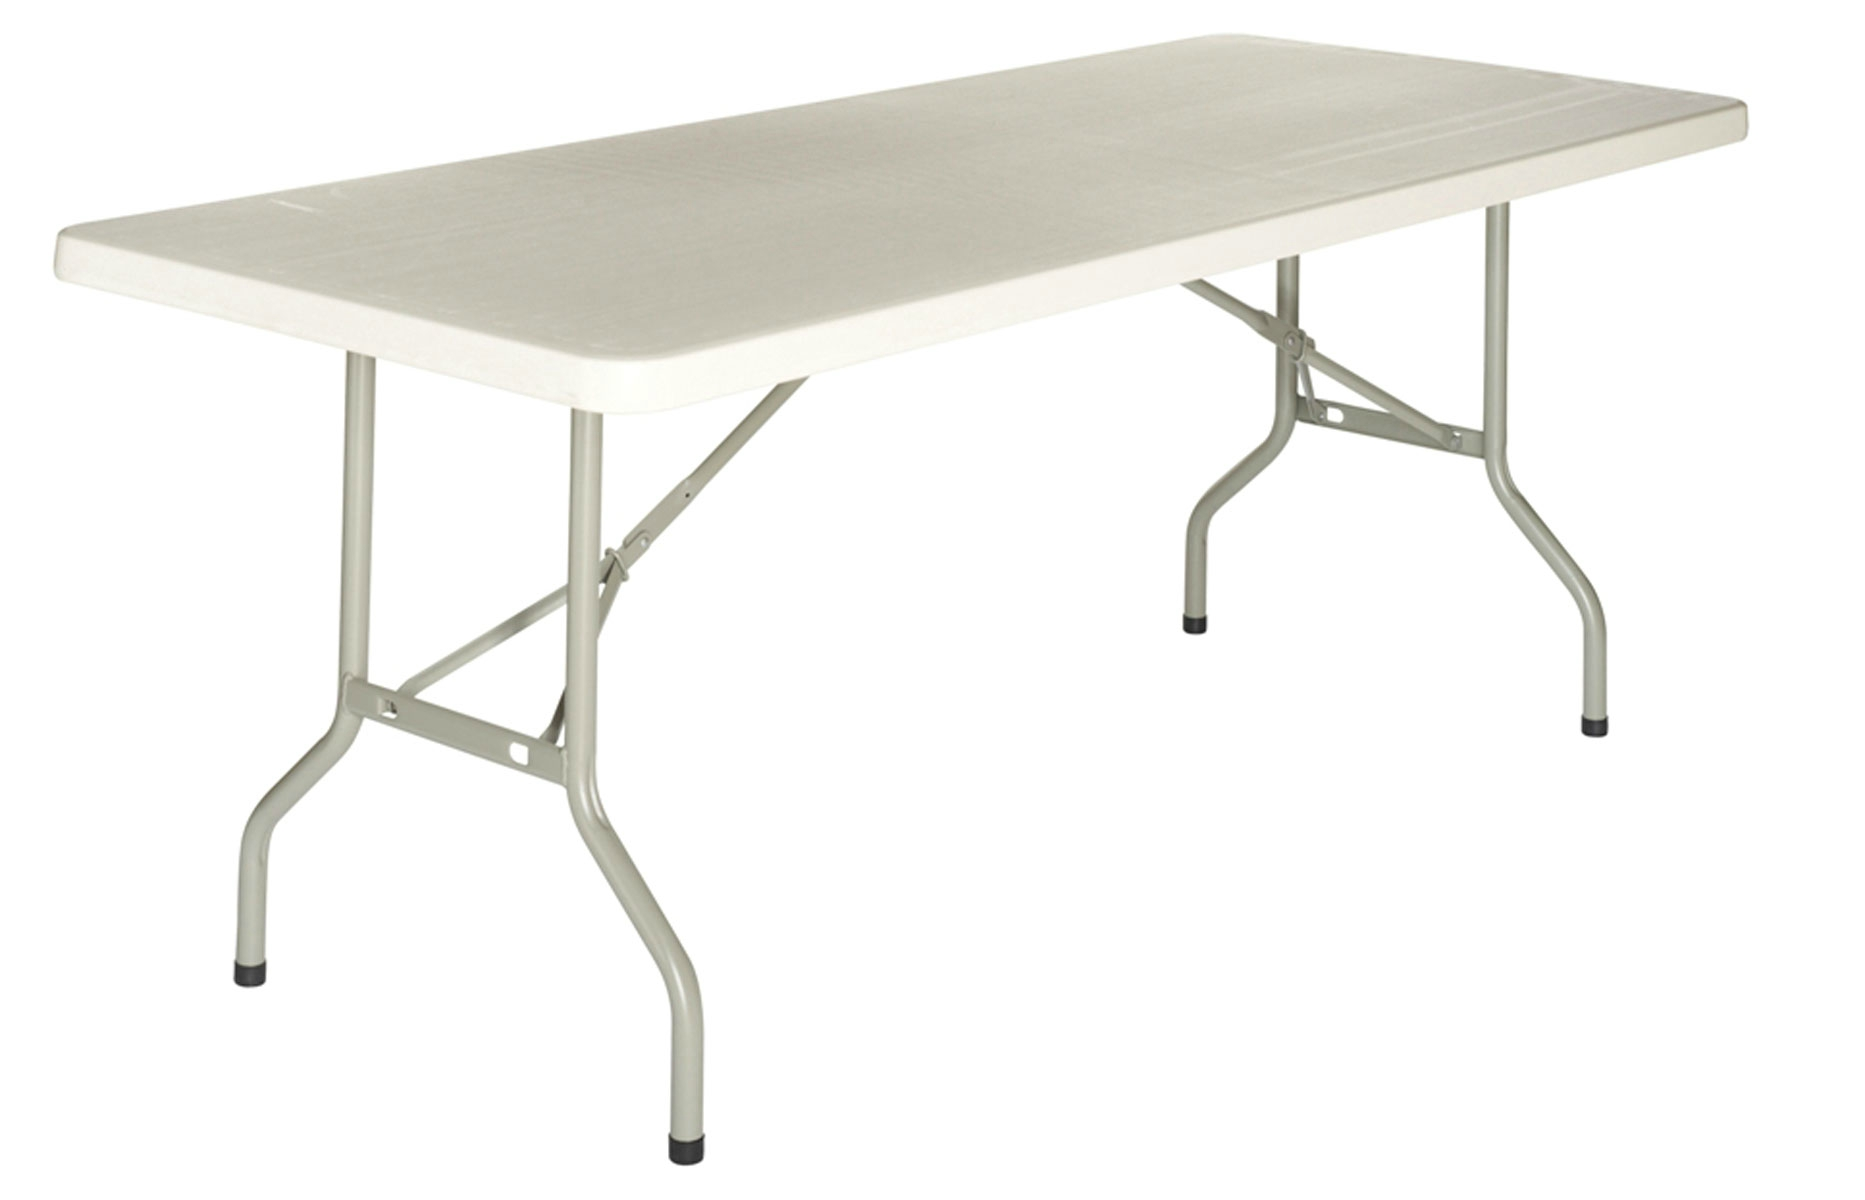 Pied table pliant castorama table de lit - Pieds de table castorama ...